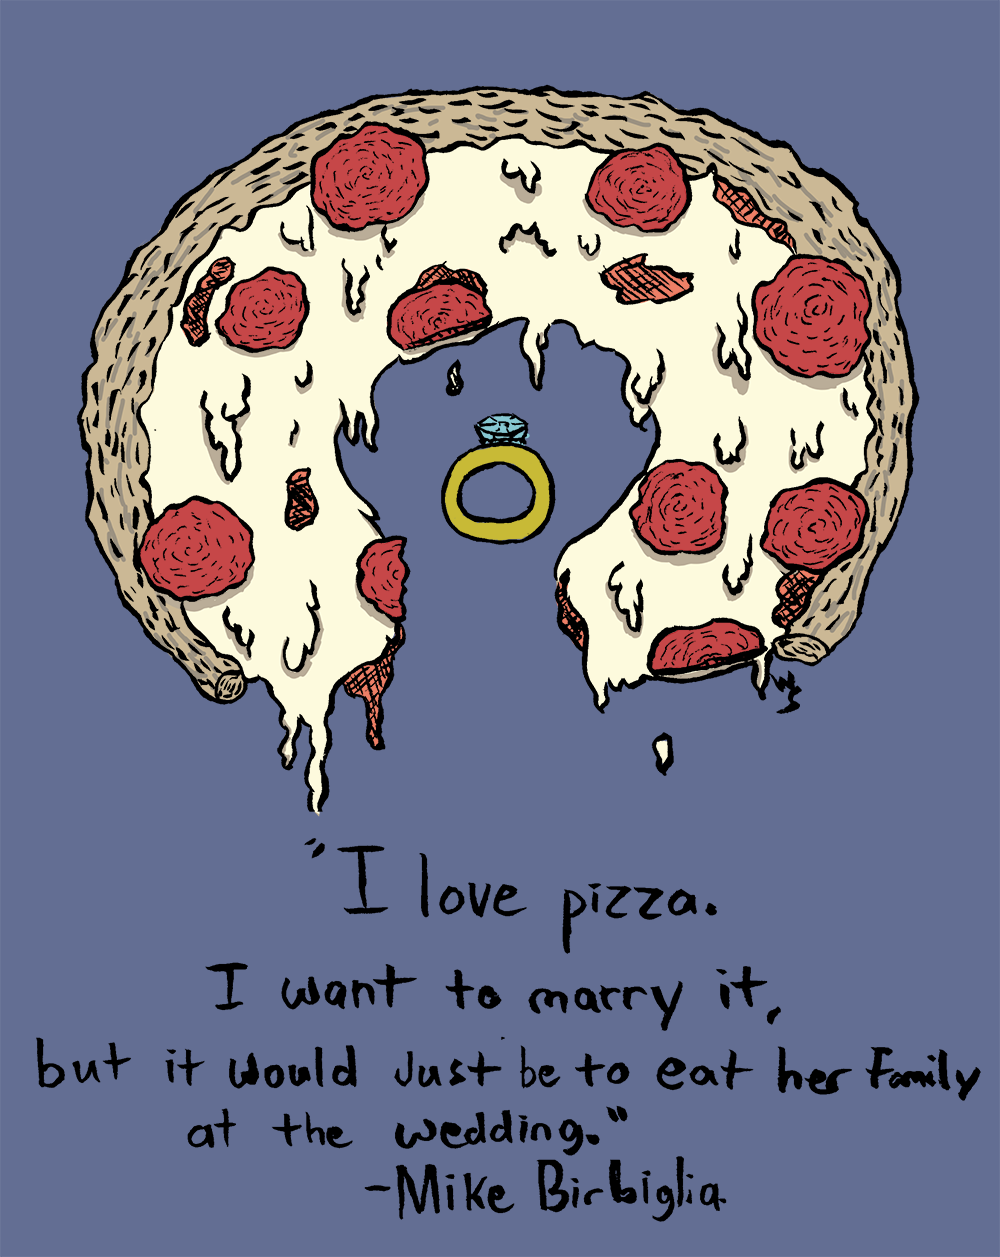 I Love Pizza, A Love Poem by Mike Birbiglia | Pizza | Know Your Meme